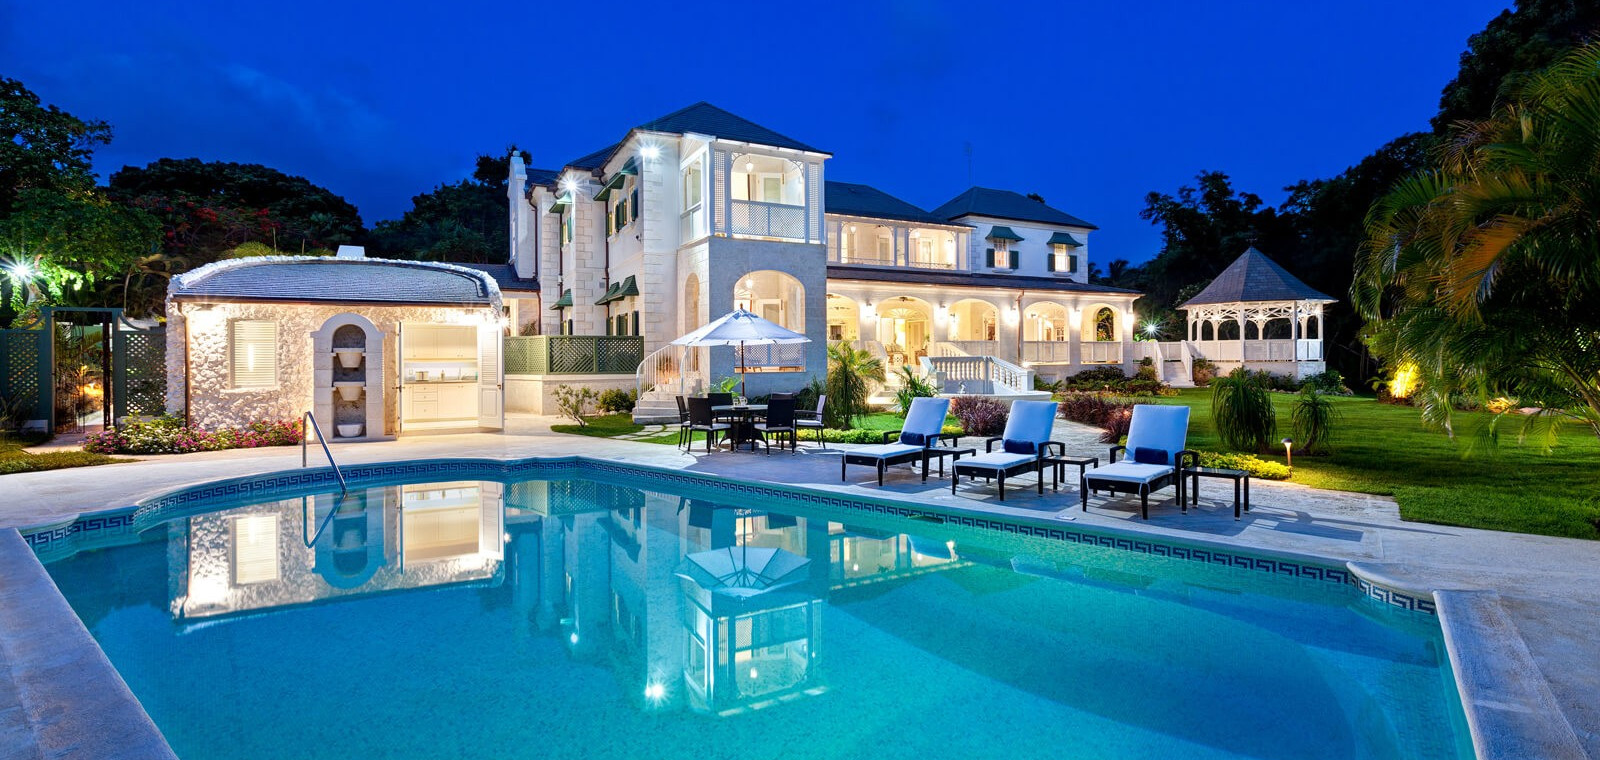 Luxury Villa in Barbados, Sandy Lane - Private Pool, Gym and Large Gardens